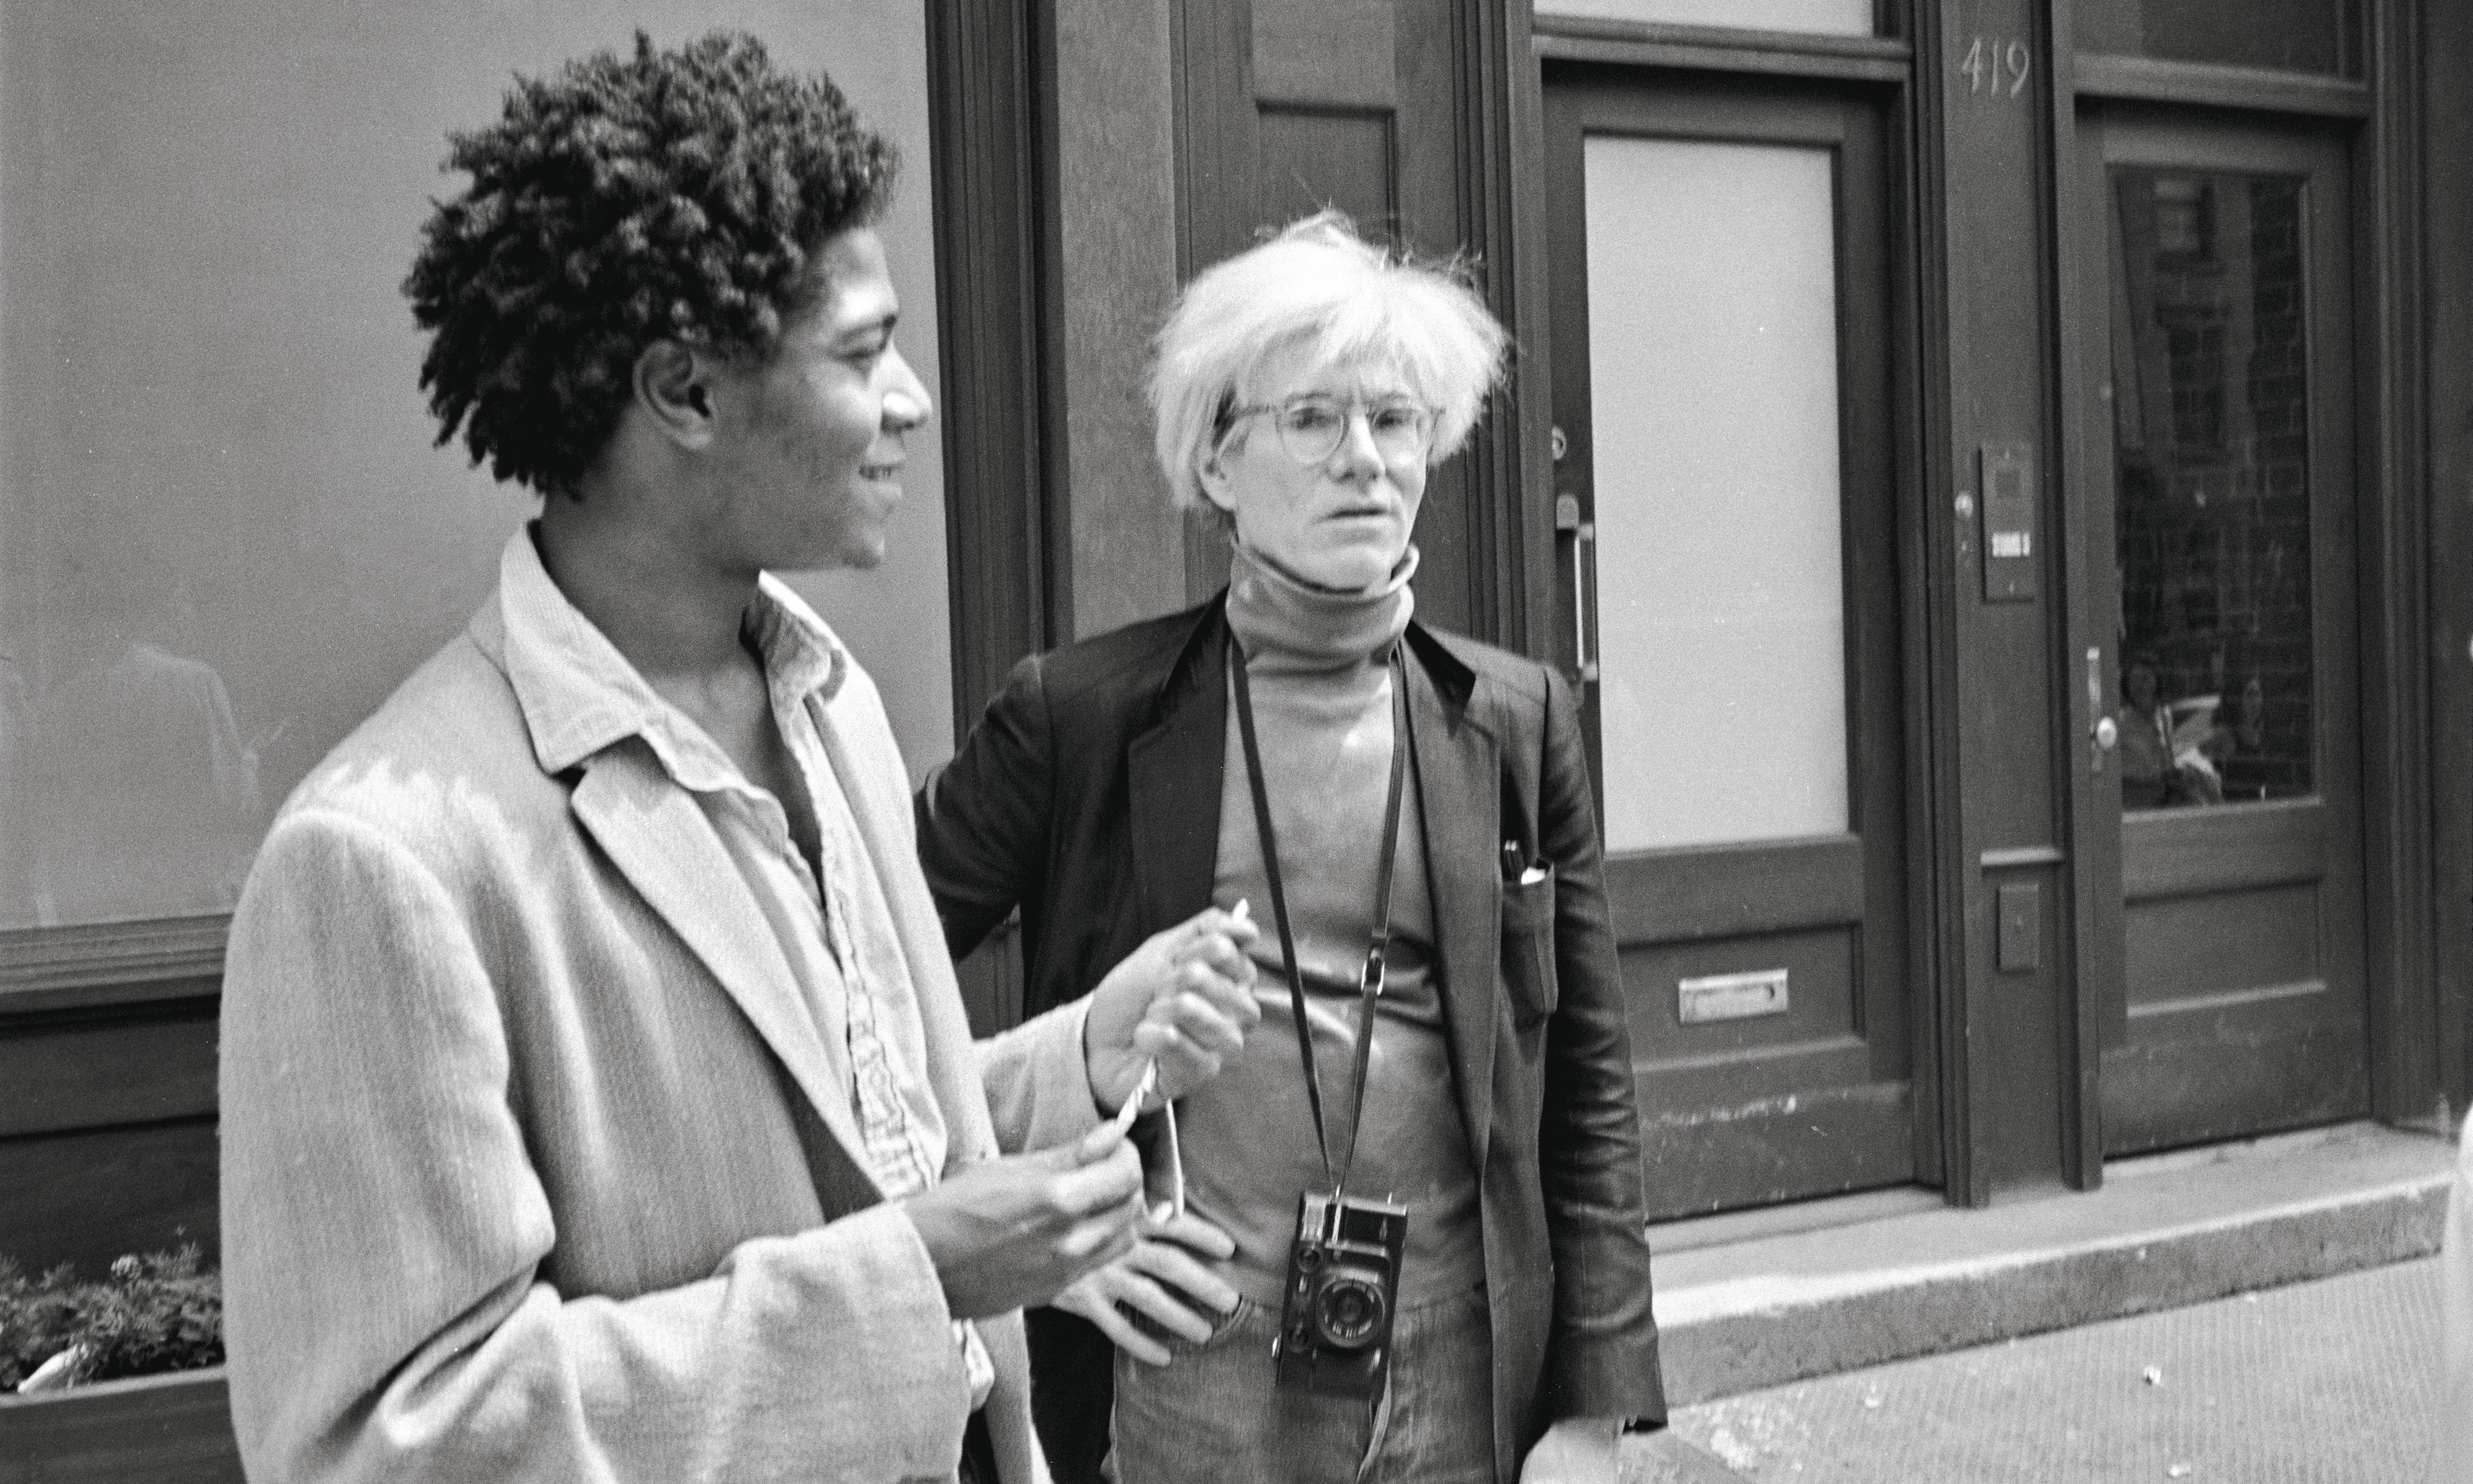 Andy Warhol's friendship with Jean-Michel Basquiat revealed in 400 unseen photos